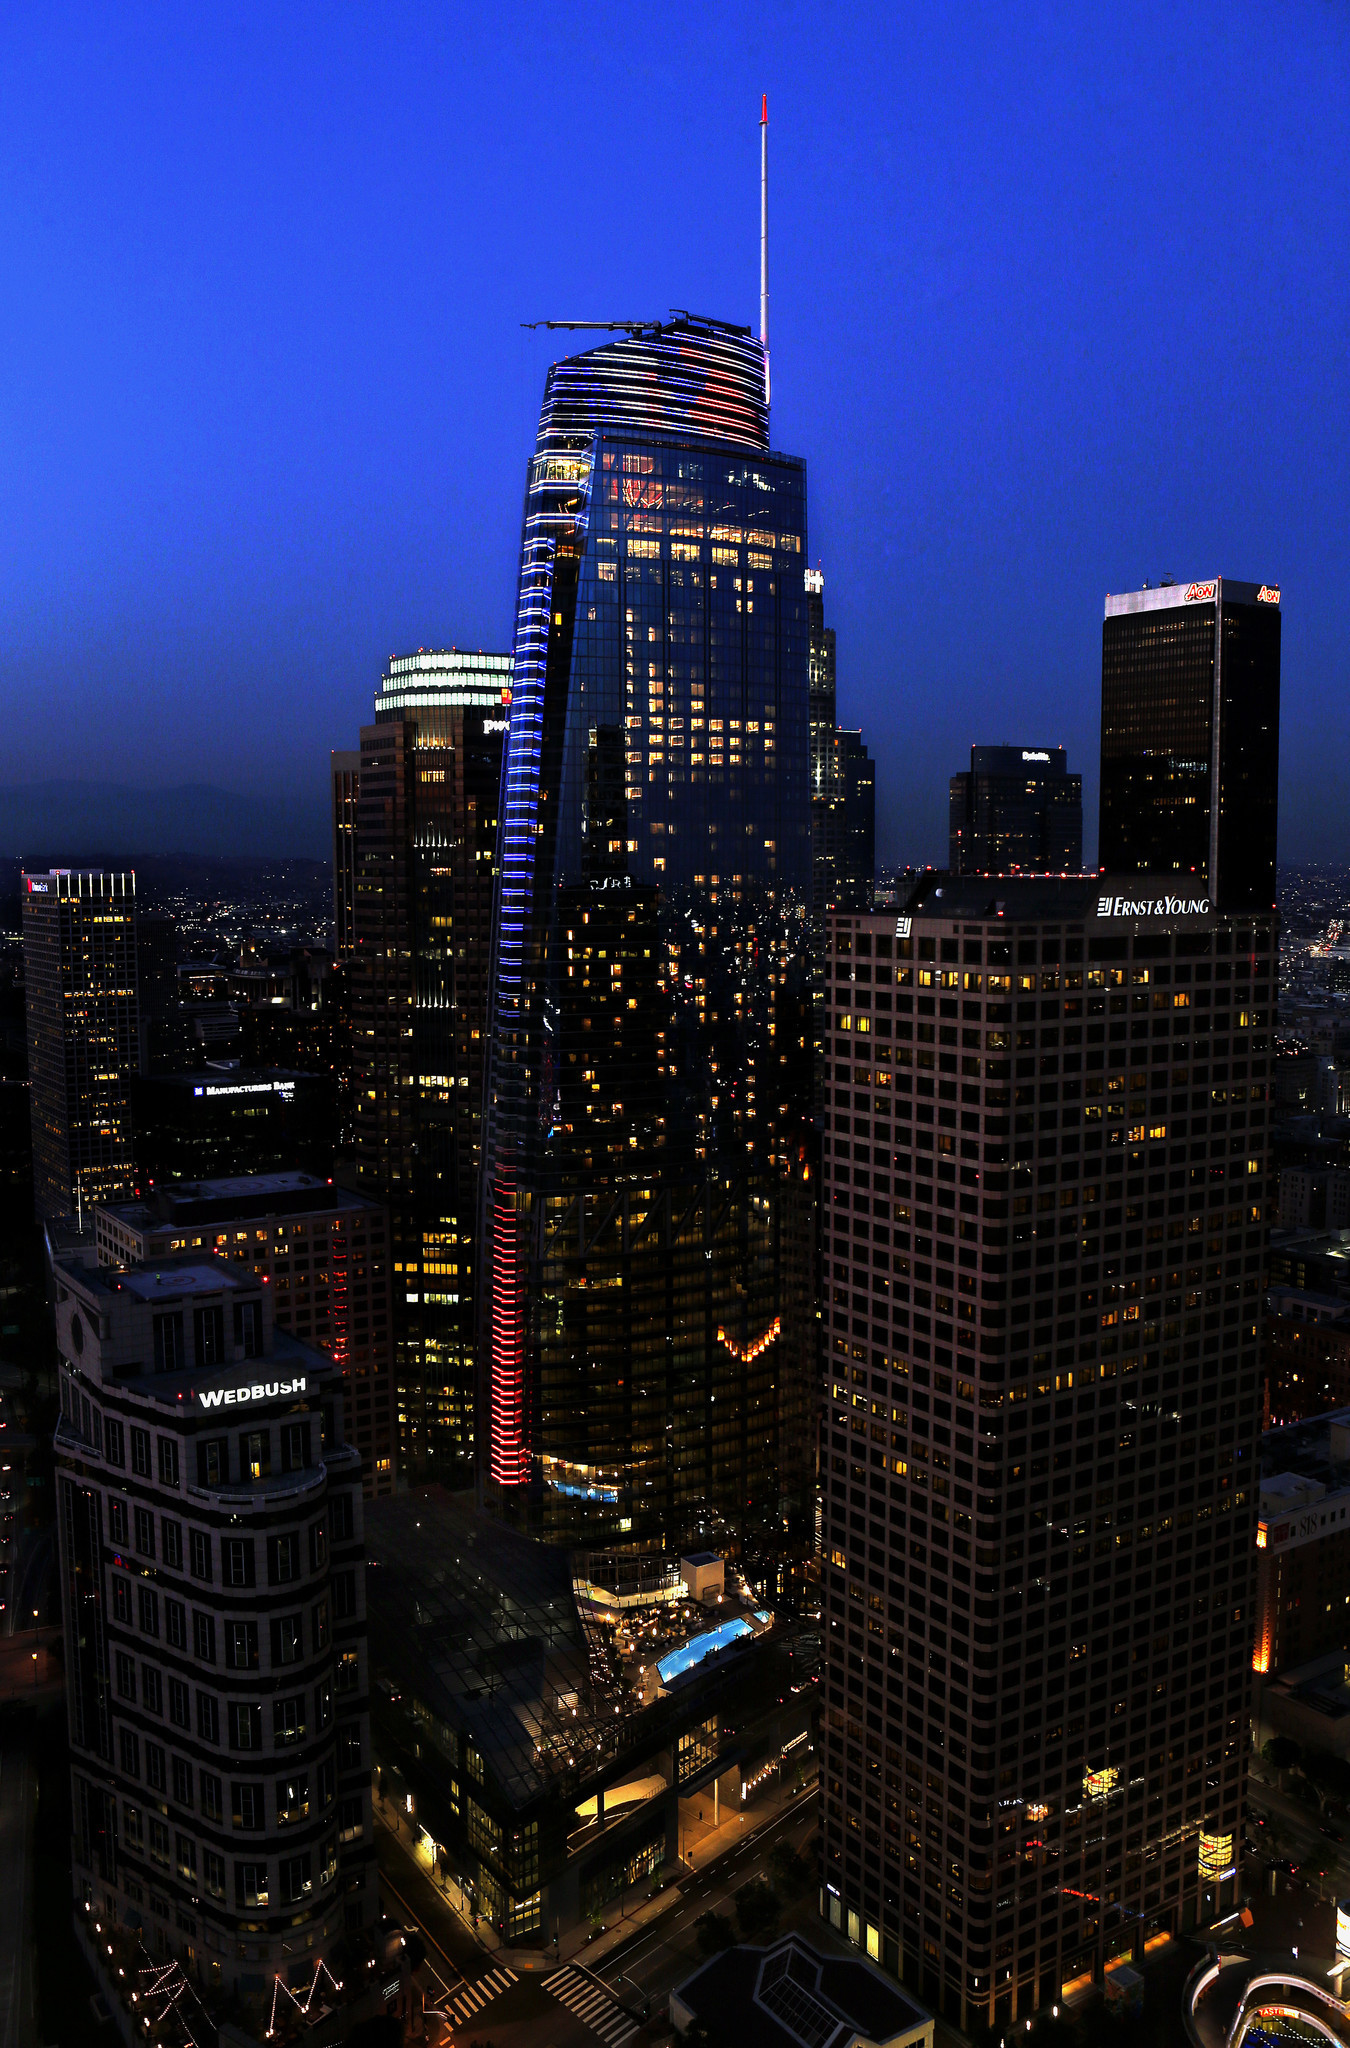 The Wilshire Grand has roughly 2.5 miles of LEDs running up and down its spine.